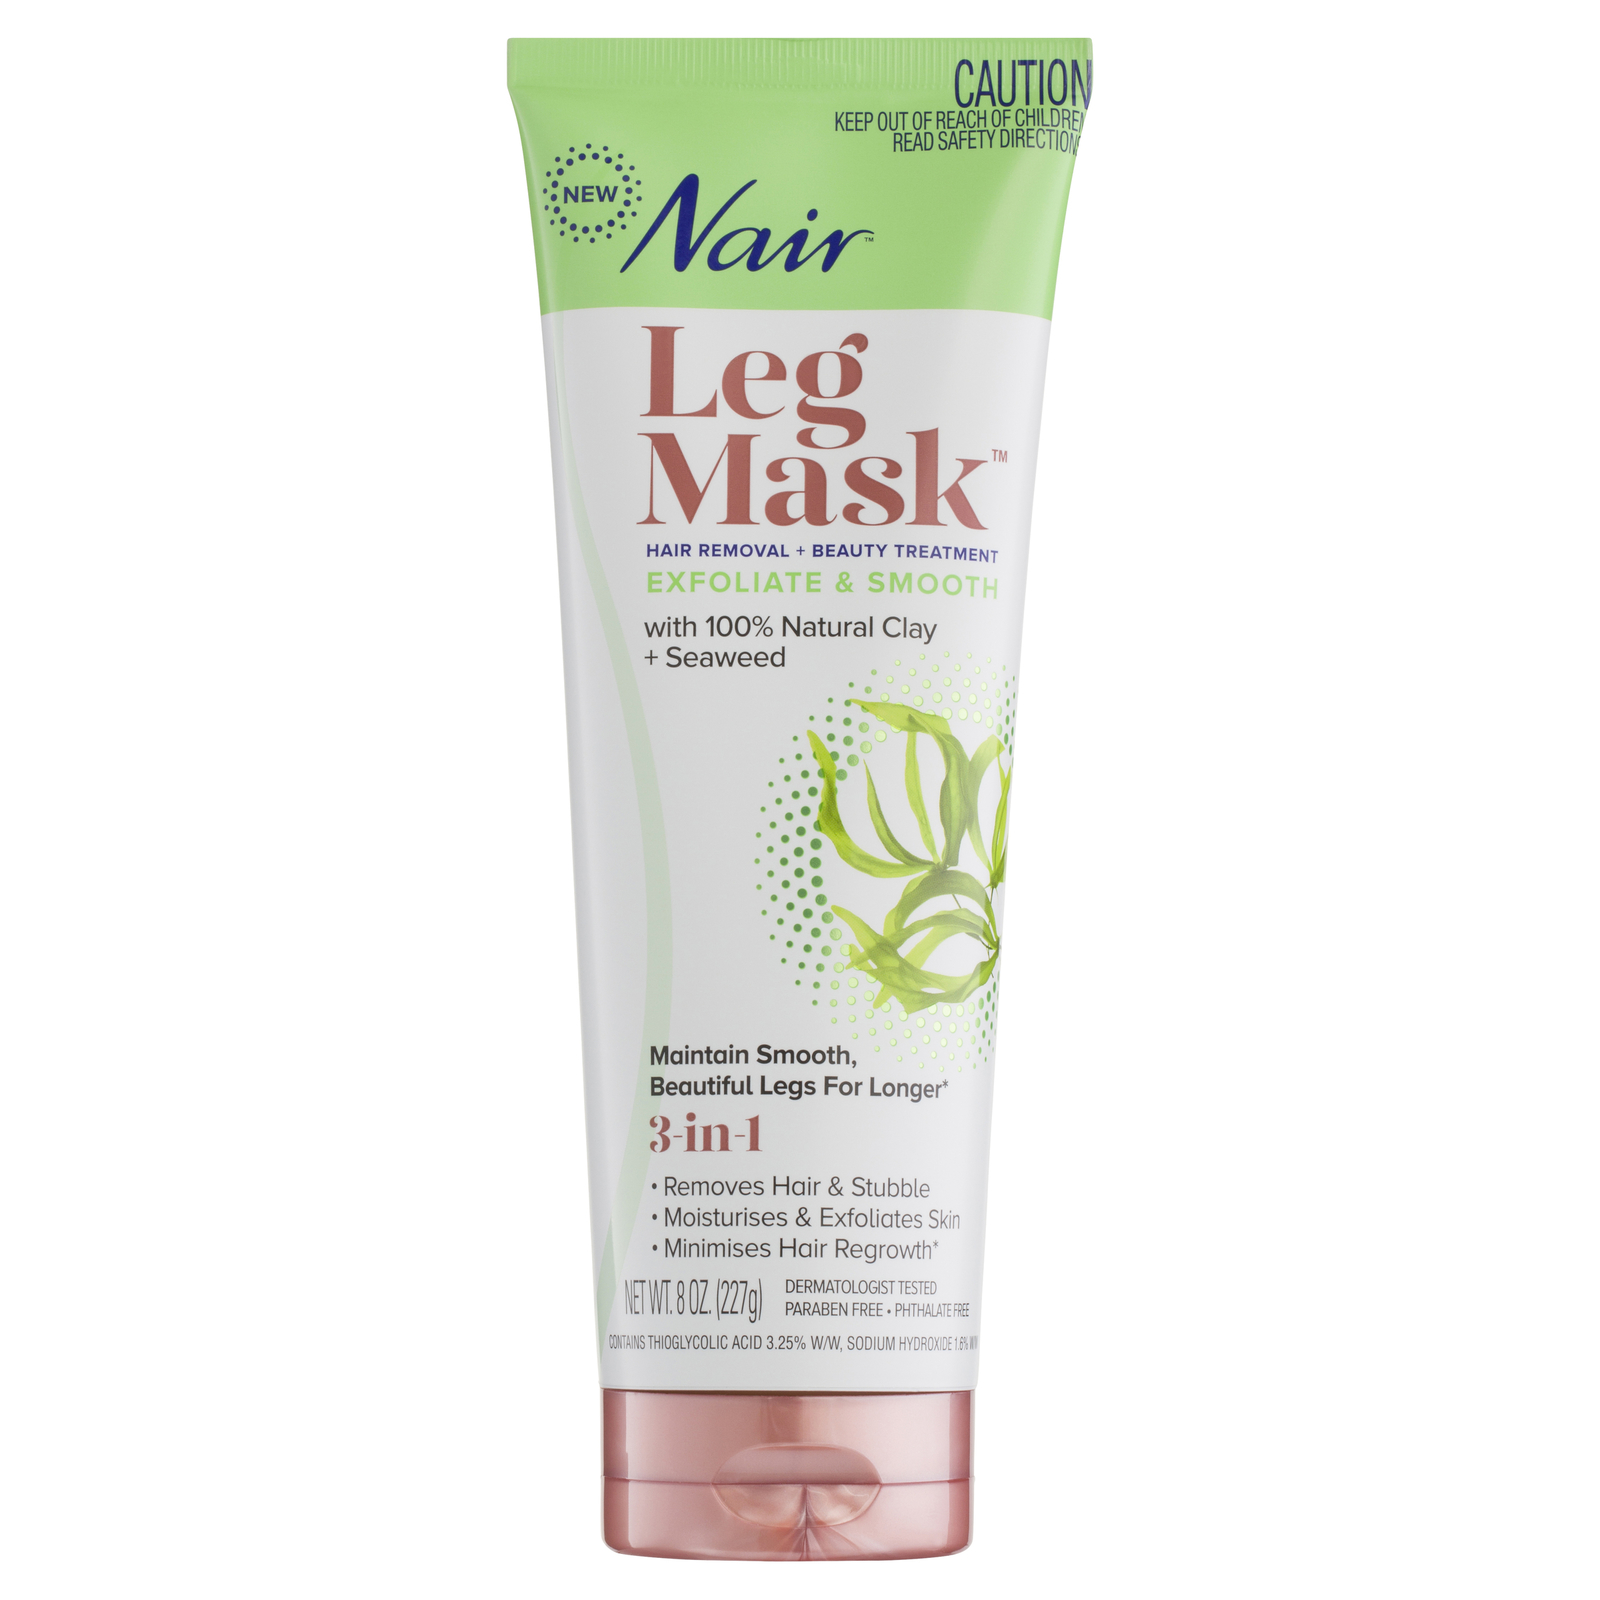 Nair Leg Mask Exfoliate + Smooth with Seaweed (227g) image